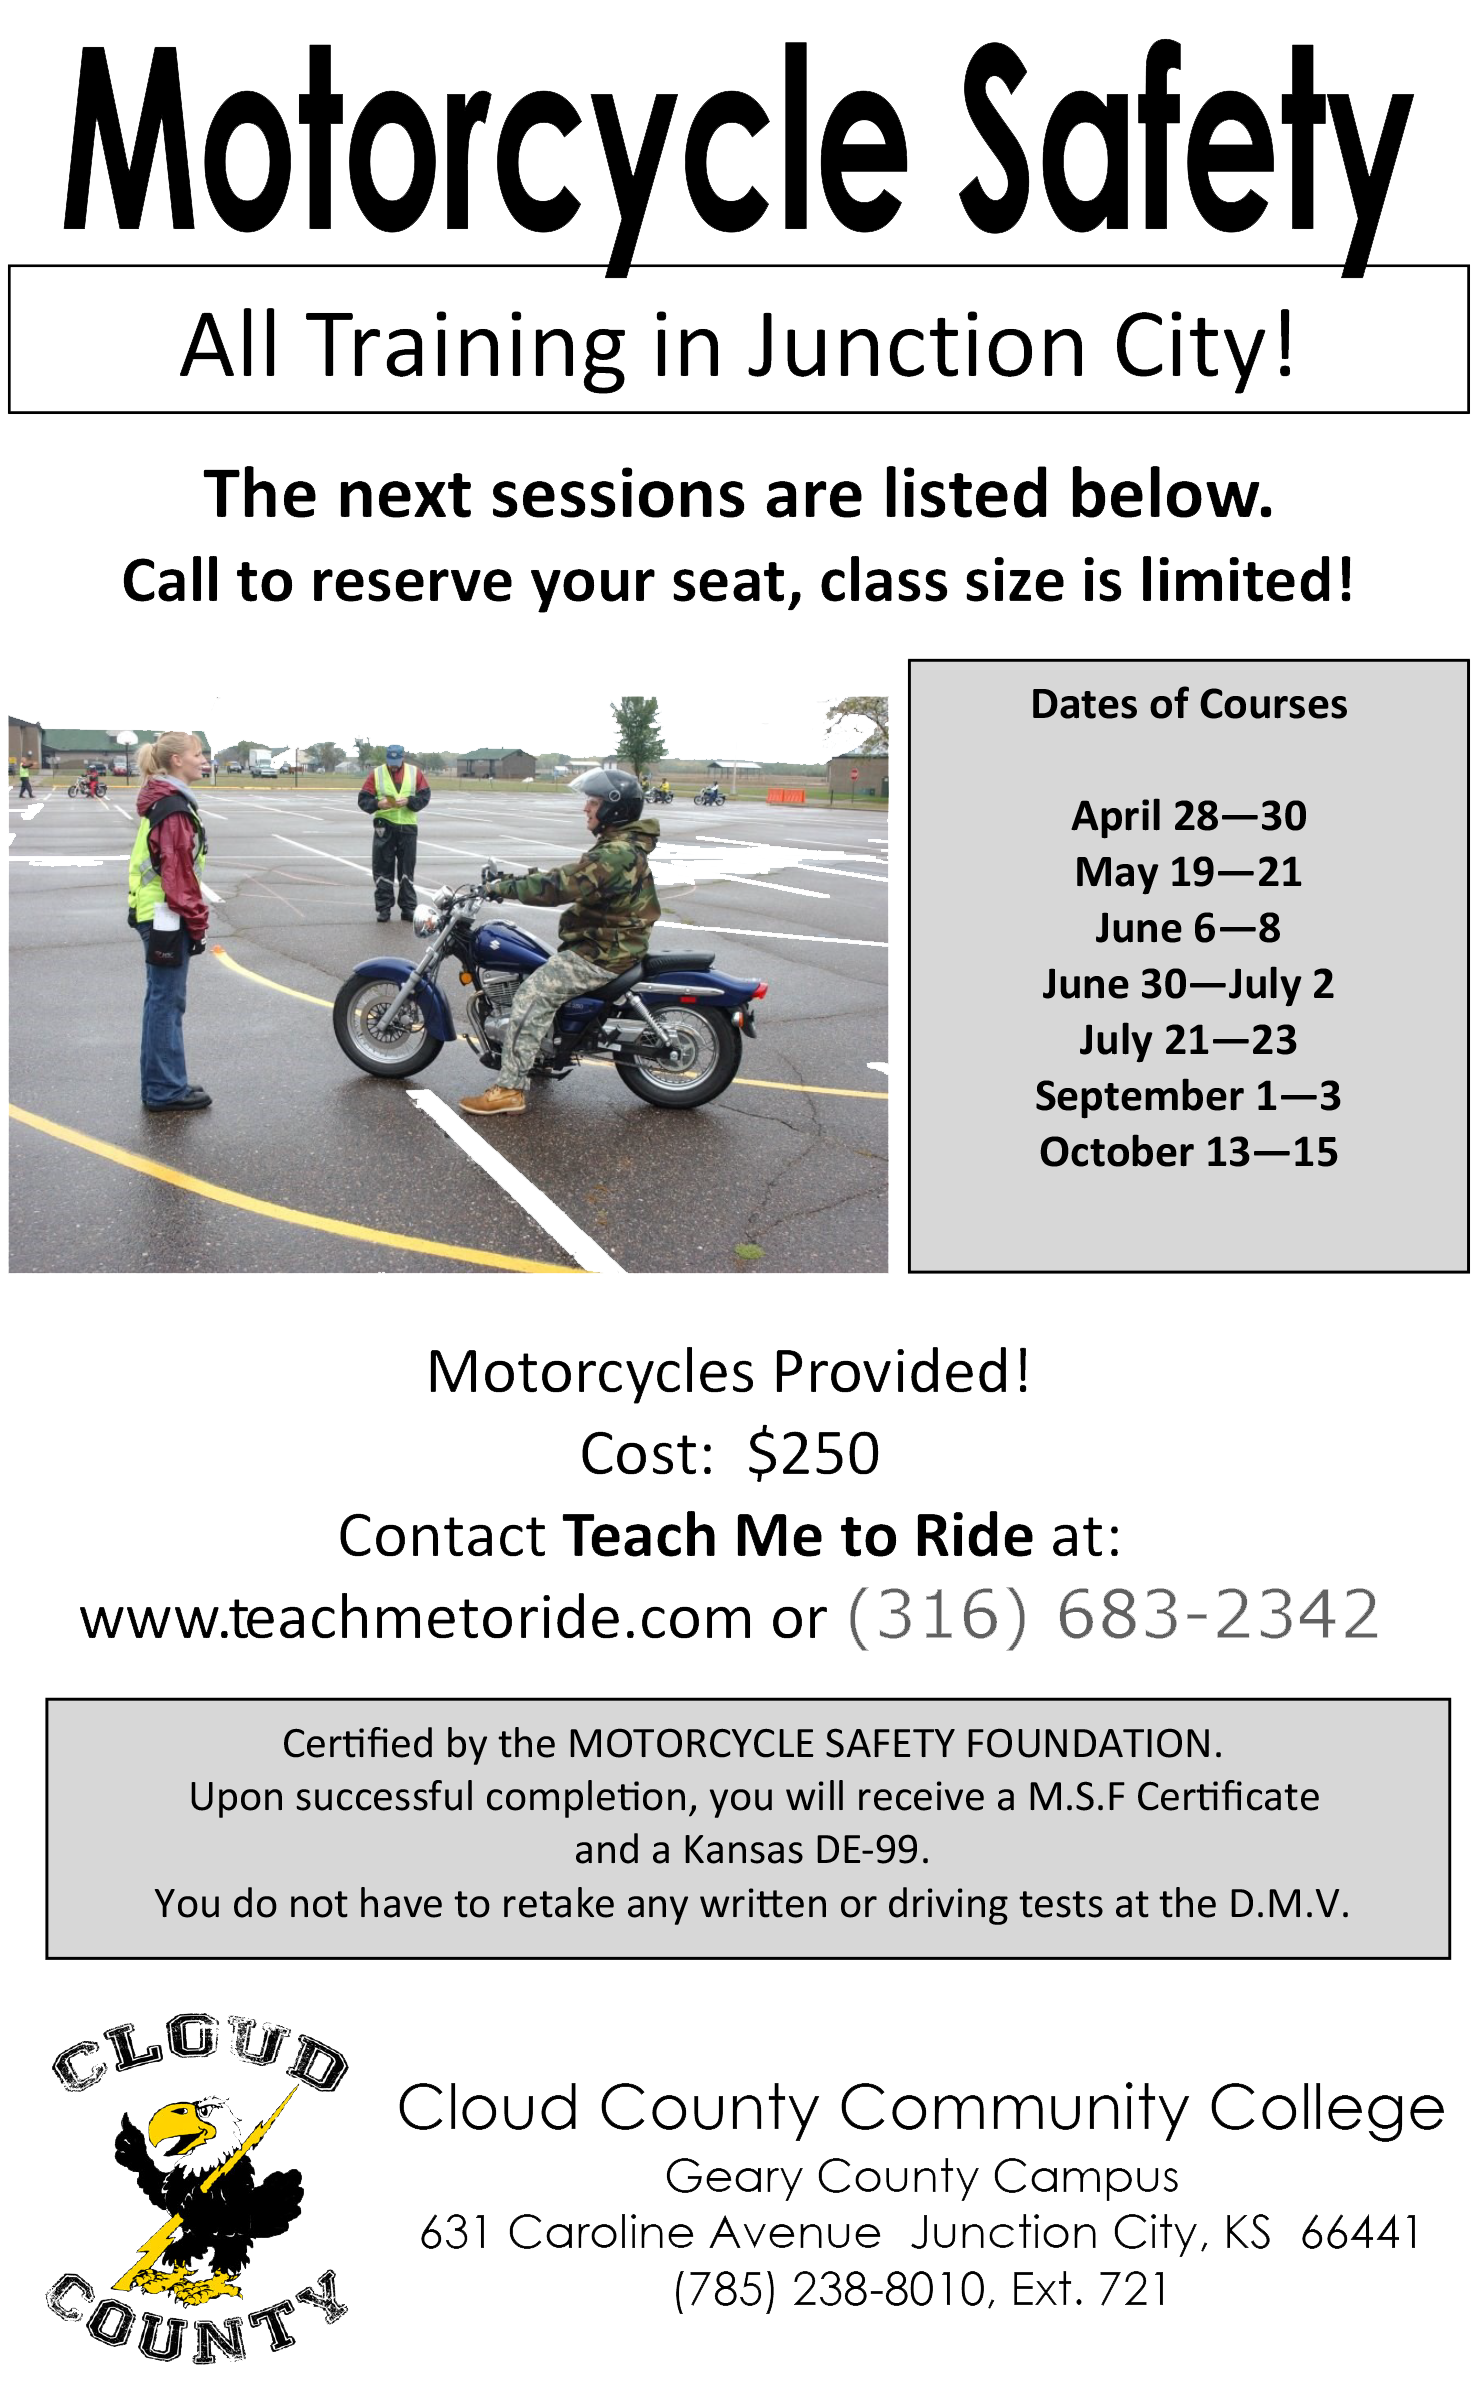 2017 Motorcycle Saftey schedule